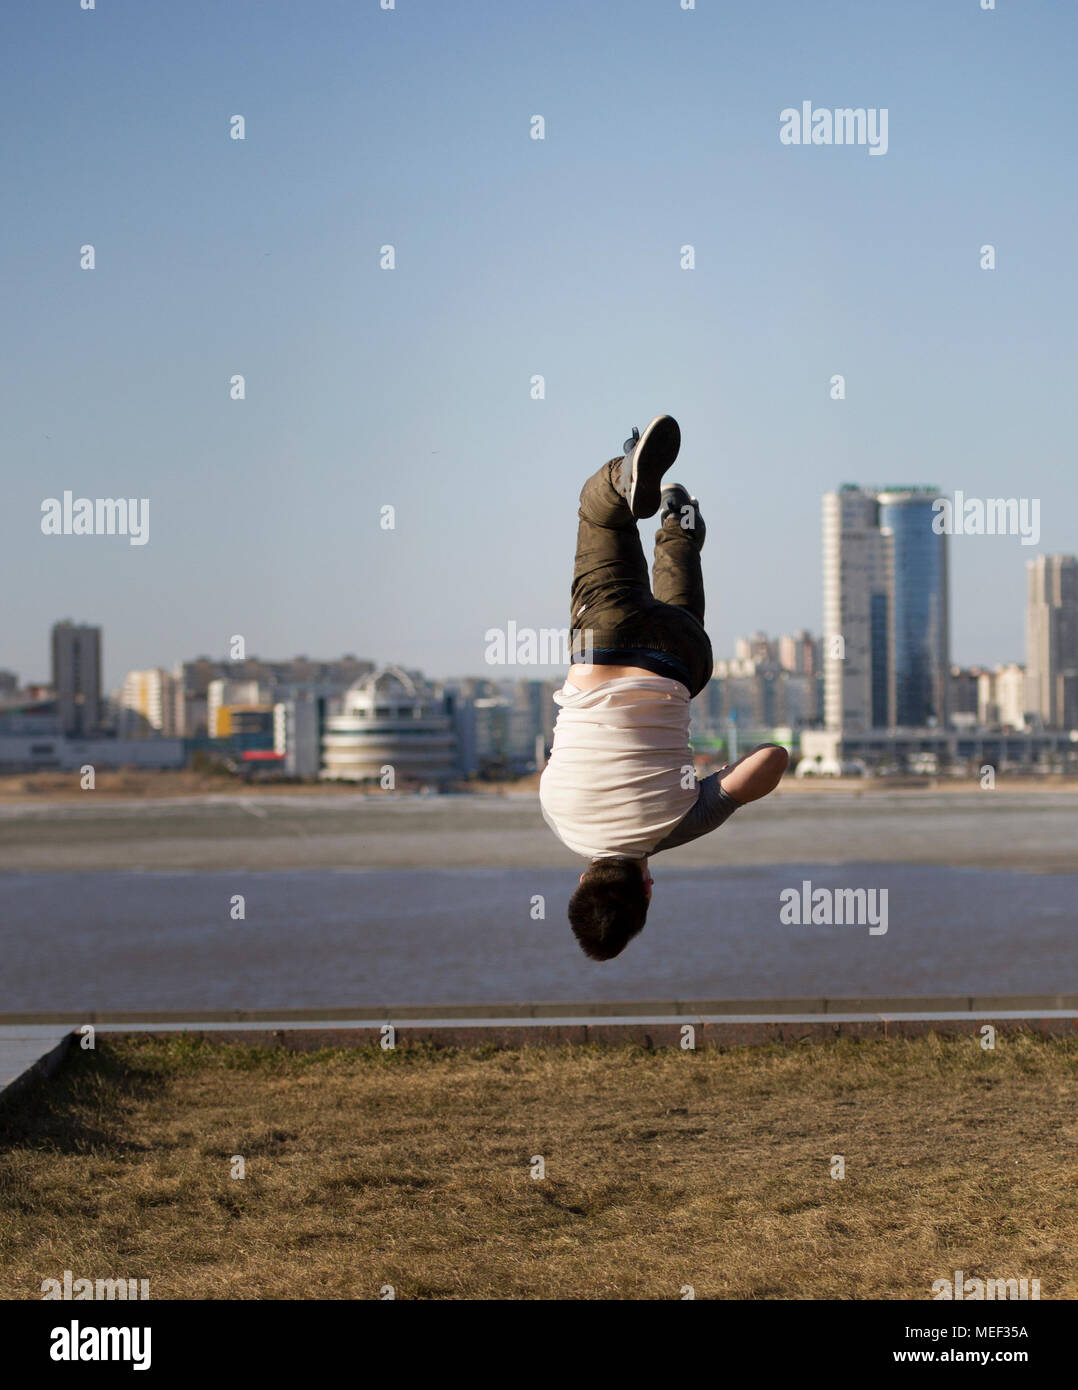 Young male acrobatic sportsman performs tricks upside down in front of skyline - Stock Image